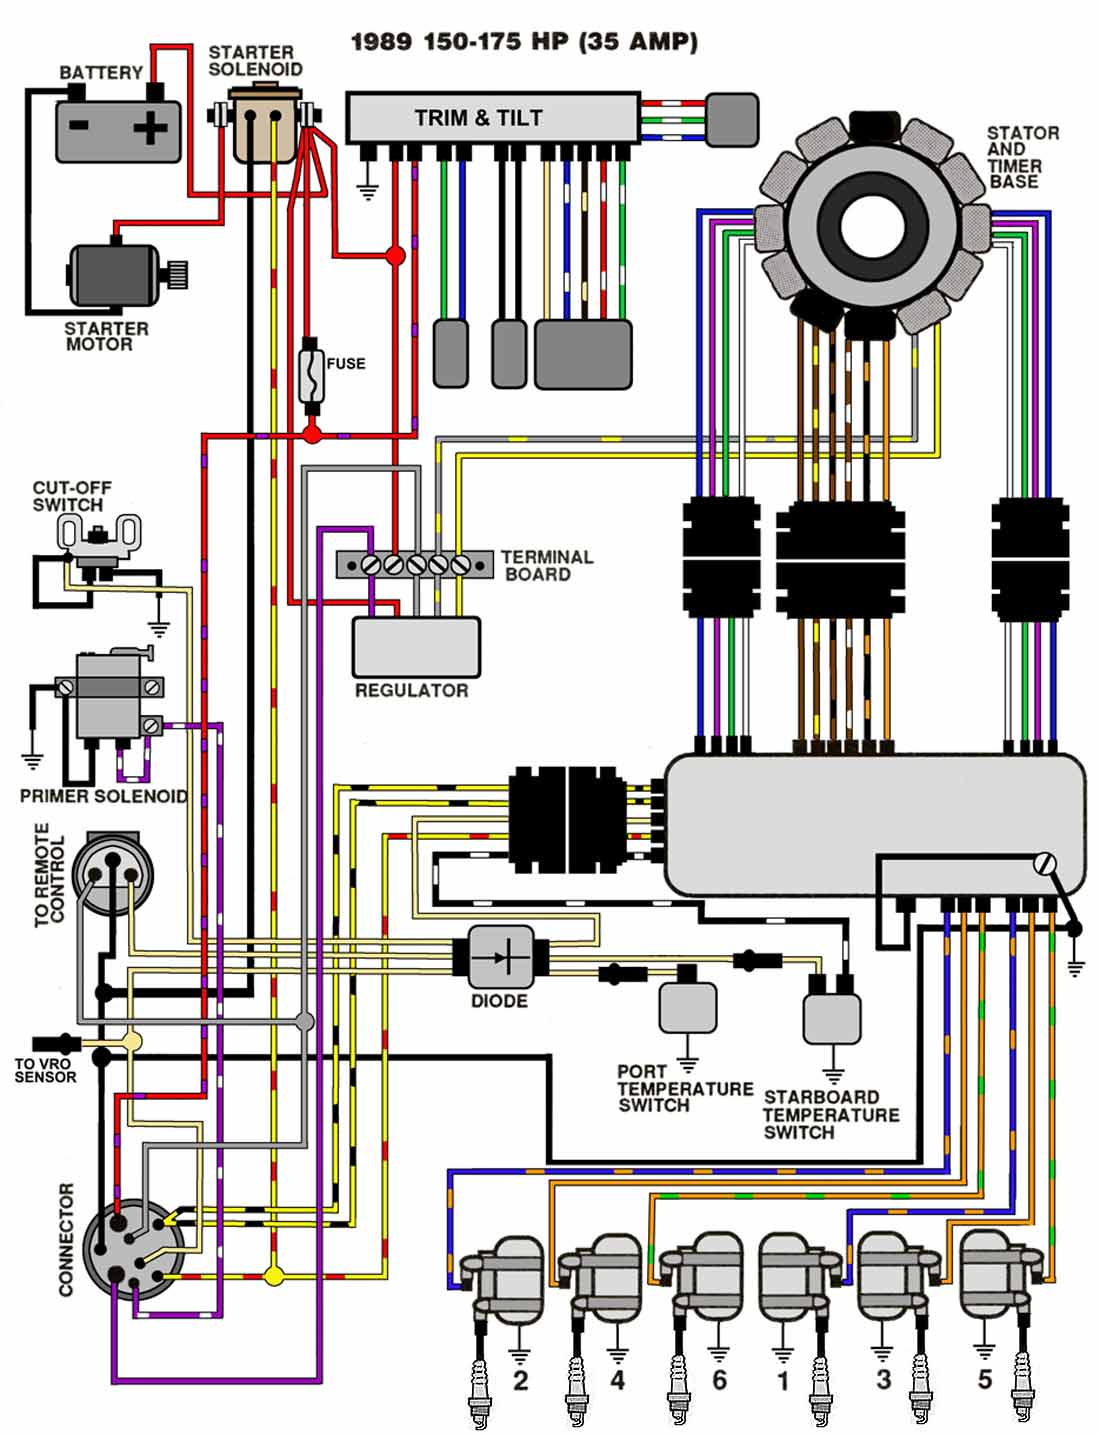 1979 mercury 150 hp outboard wiring diagram kc daylighter 70 johnson harness get